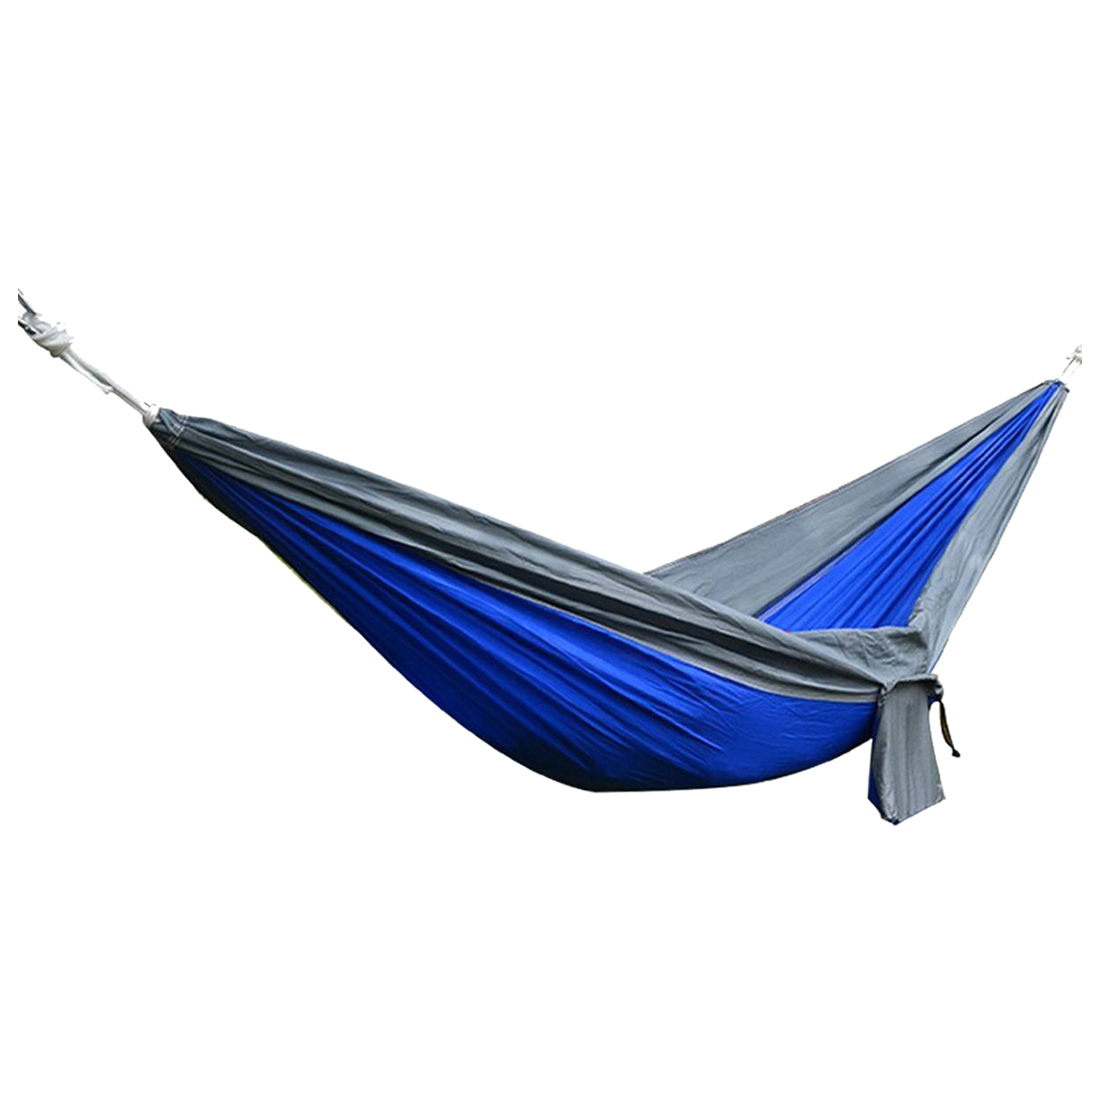 Promotion! Portable Ultra-light Solid, Durable 2 Person Parachute Cloth Hammock Parachute Nylon Cloth